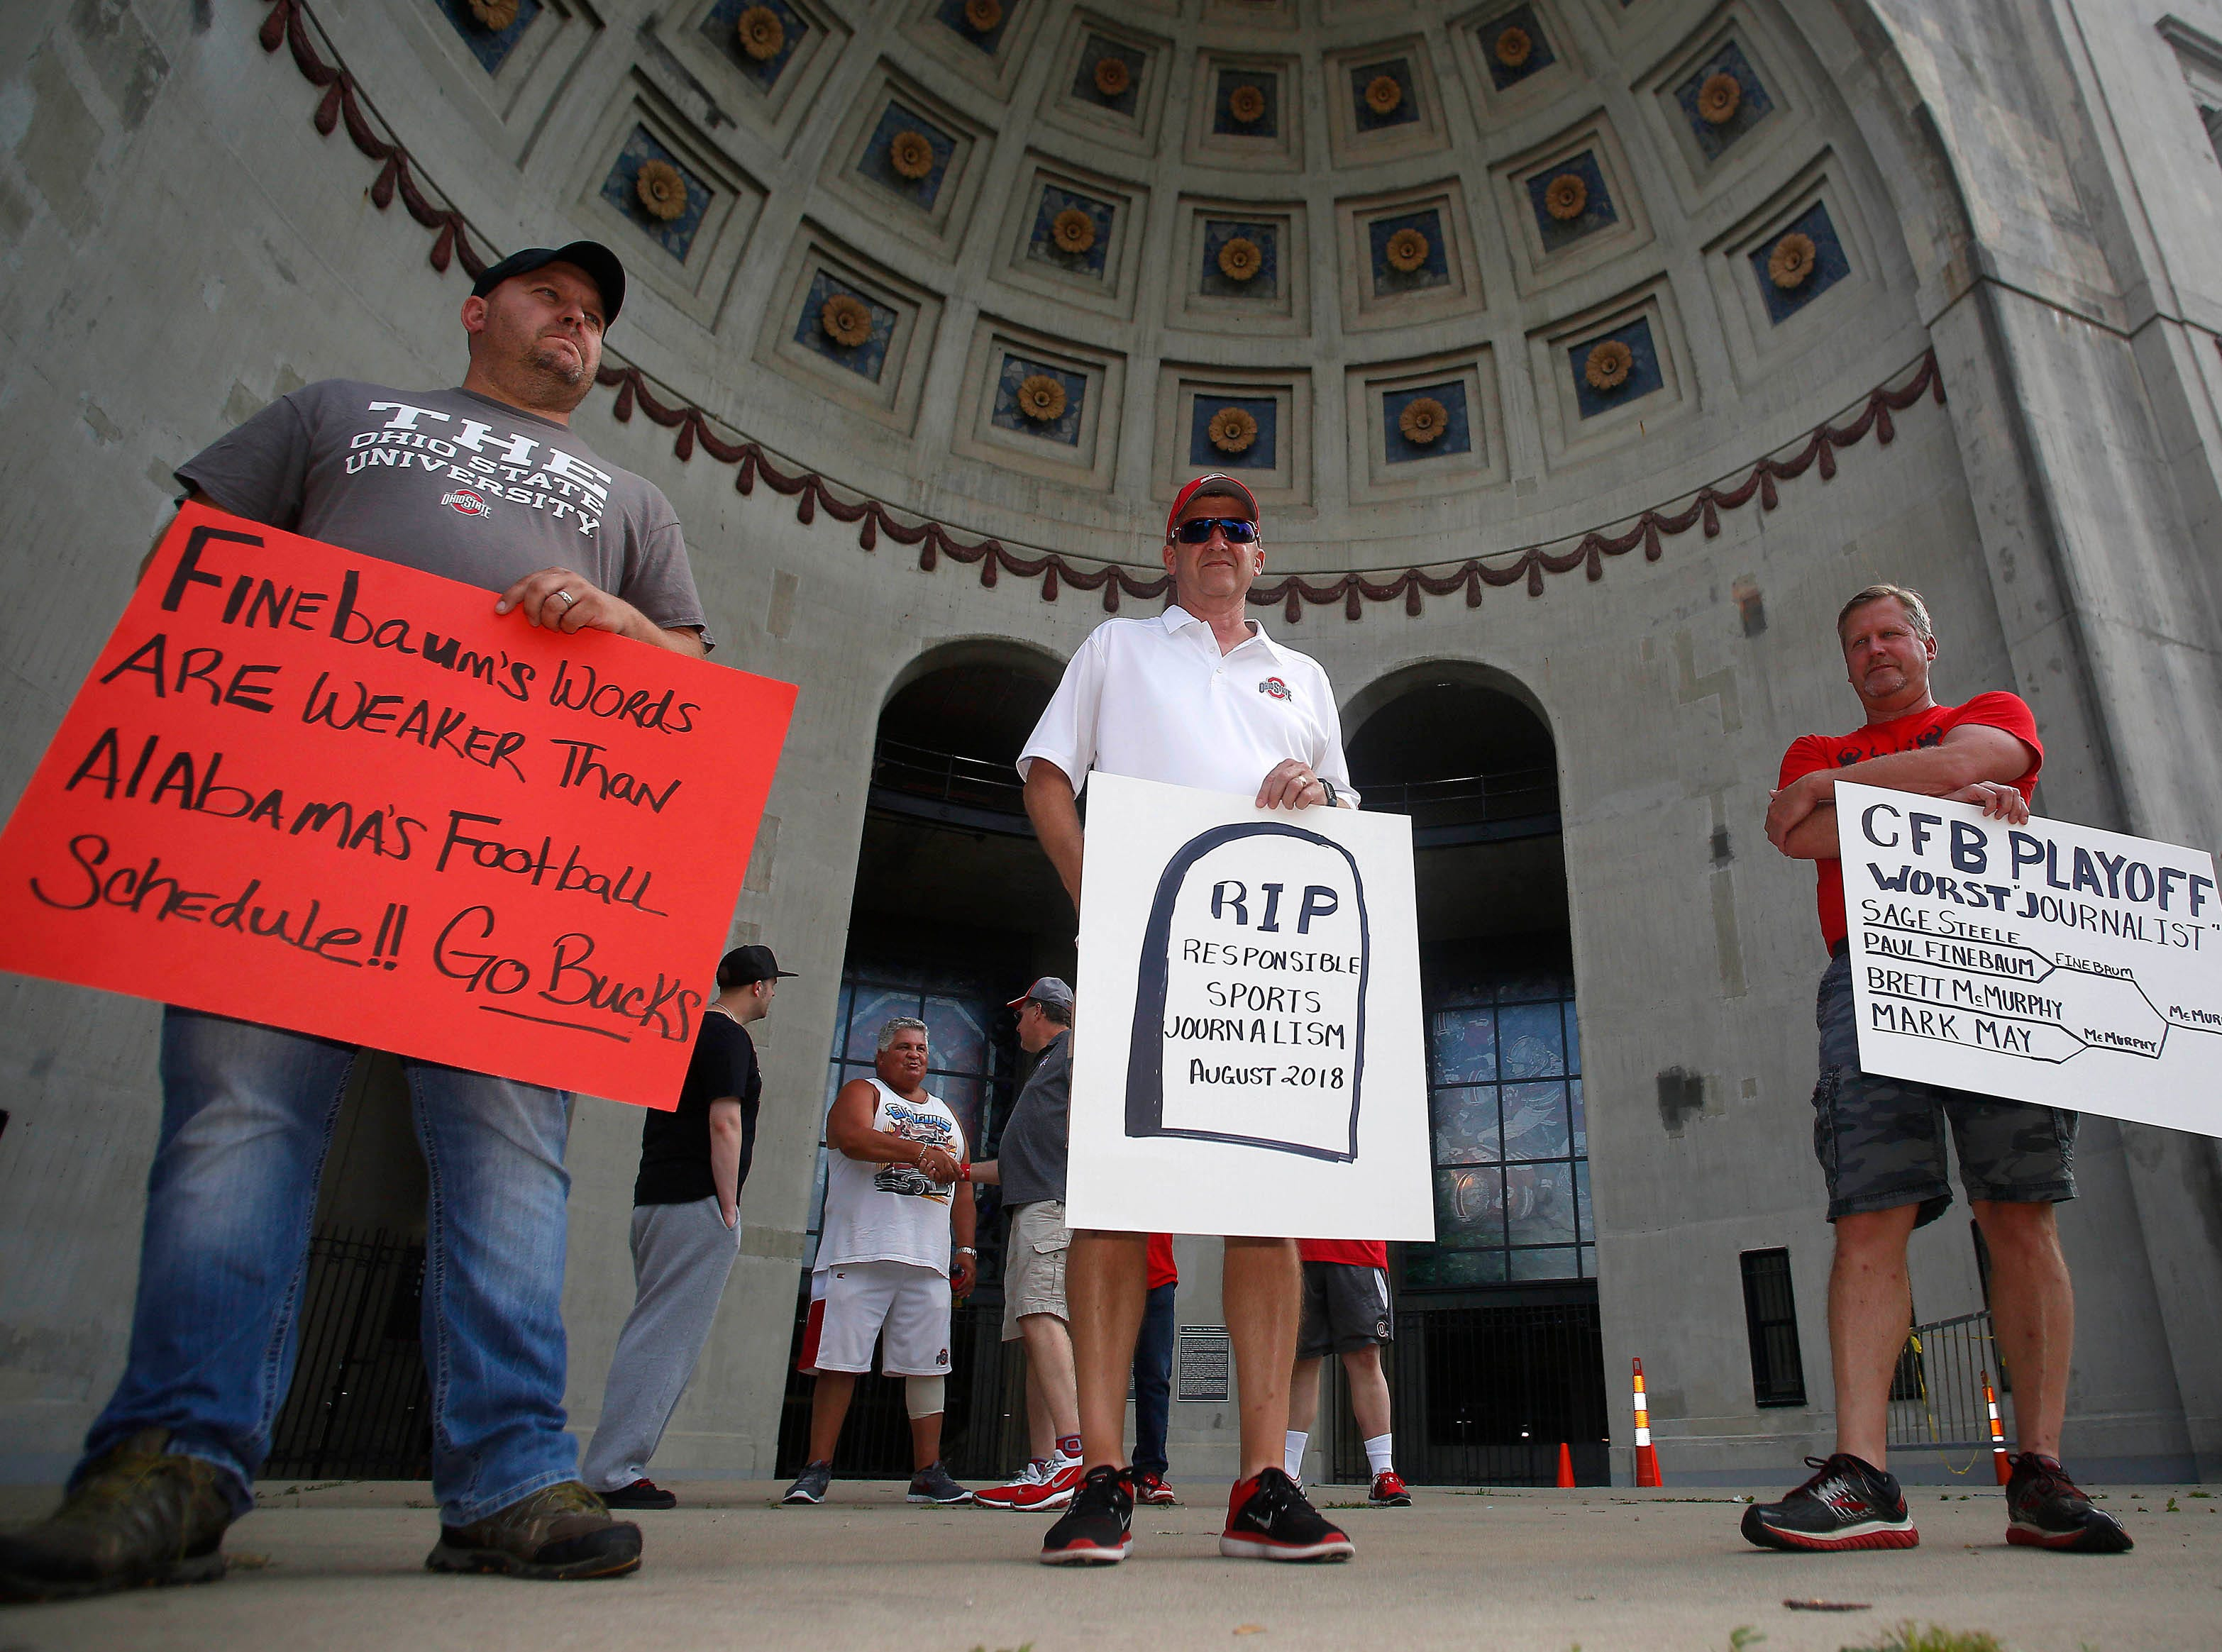 Ed Hathaway, Rick and Chris Haar support Ohio State coach Urban Meyer at a rally held at Ohio Stadium.